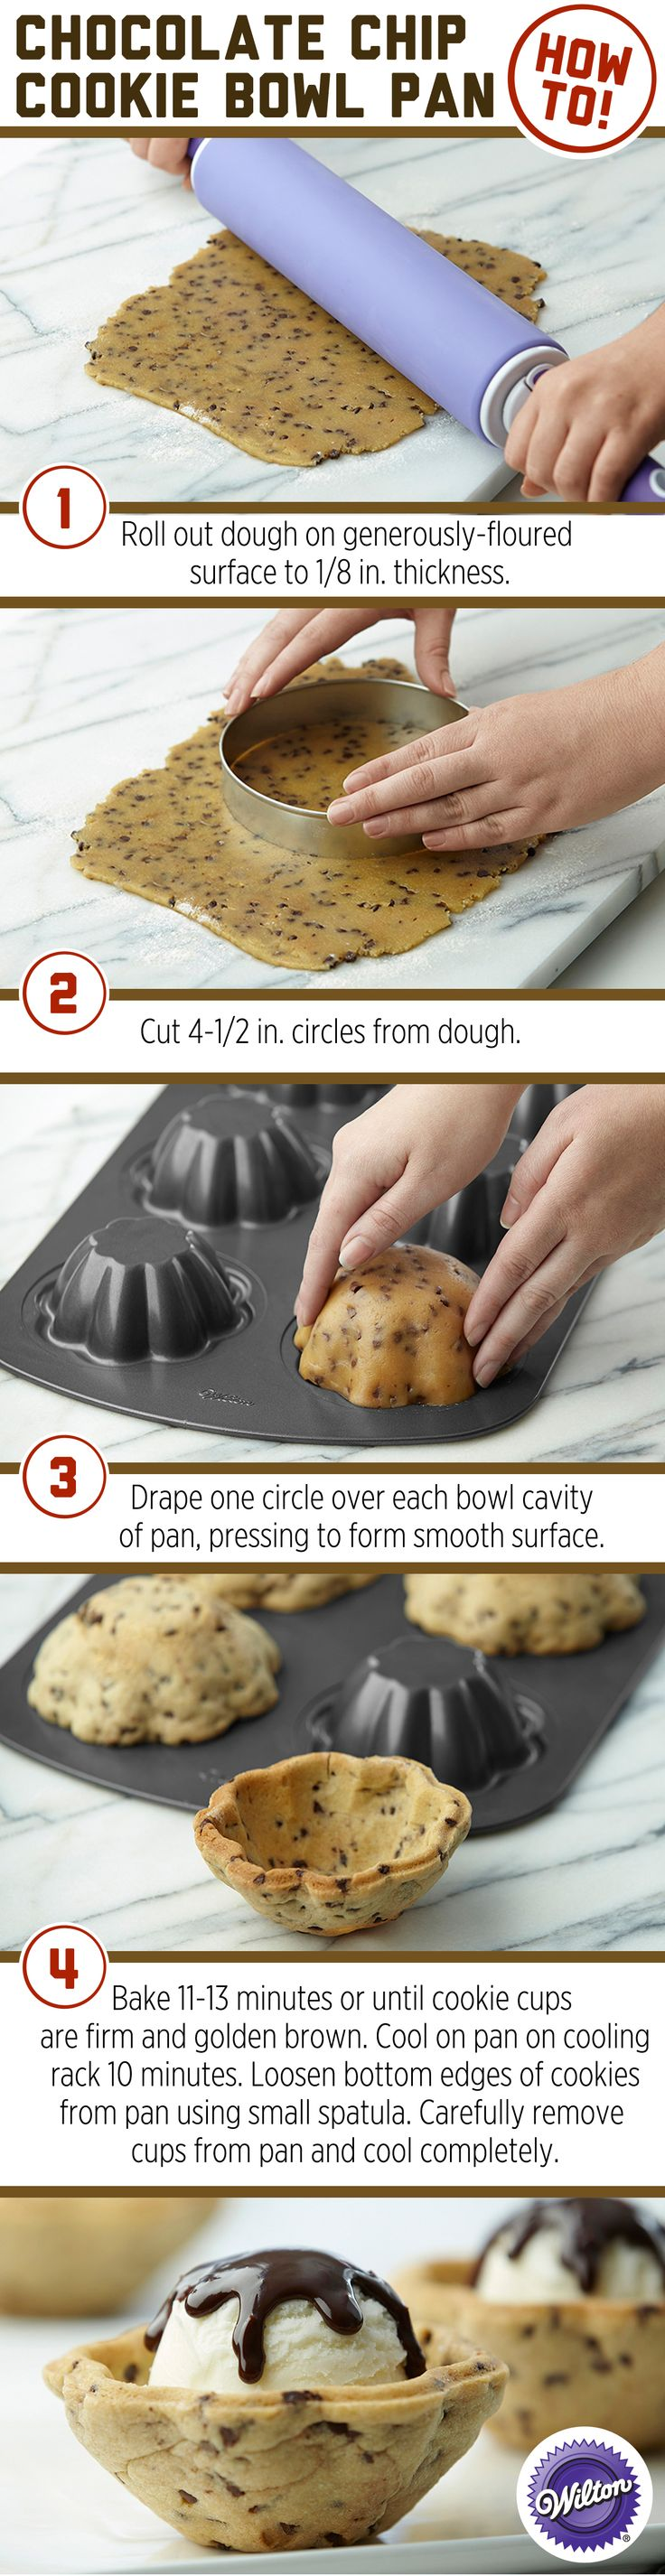 How to make a Chocolate Chip Cookie Bowl using the Wilton Cookie Bowl Pan - can also use std muffin tin